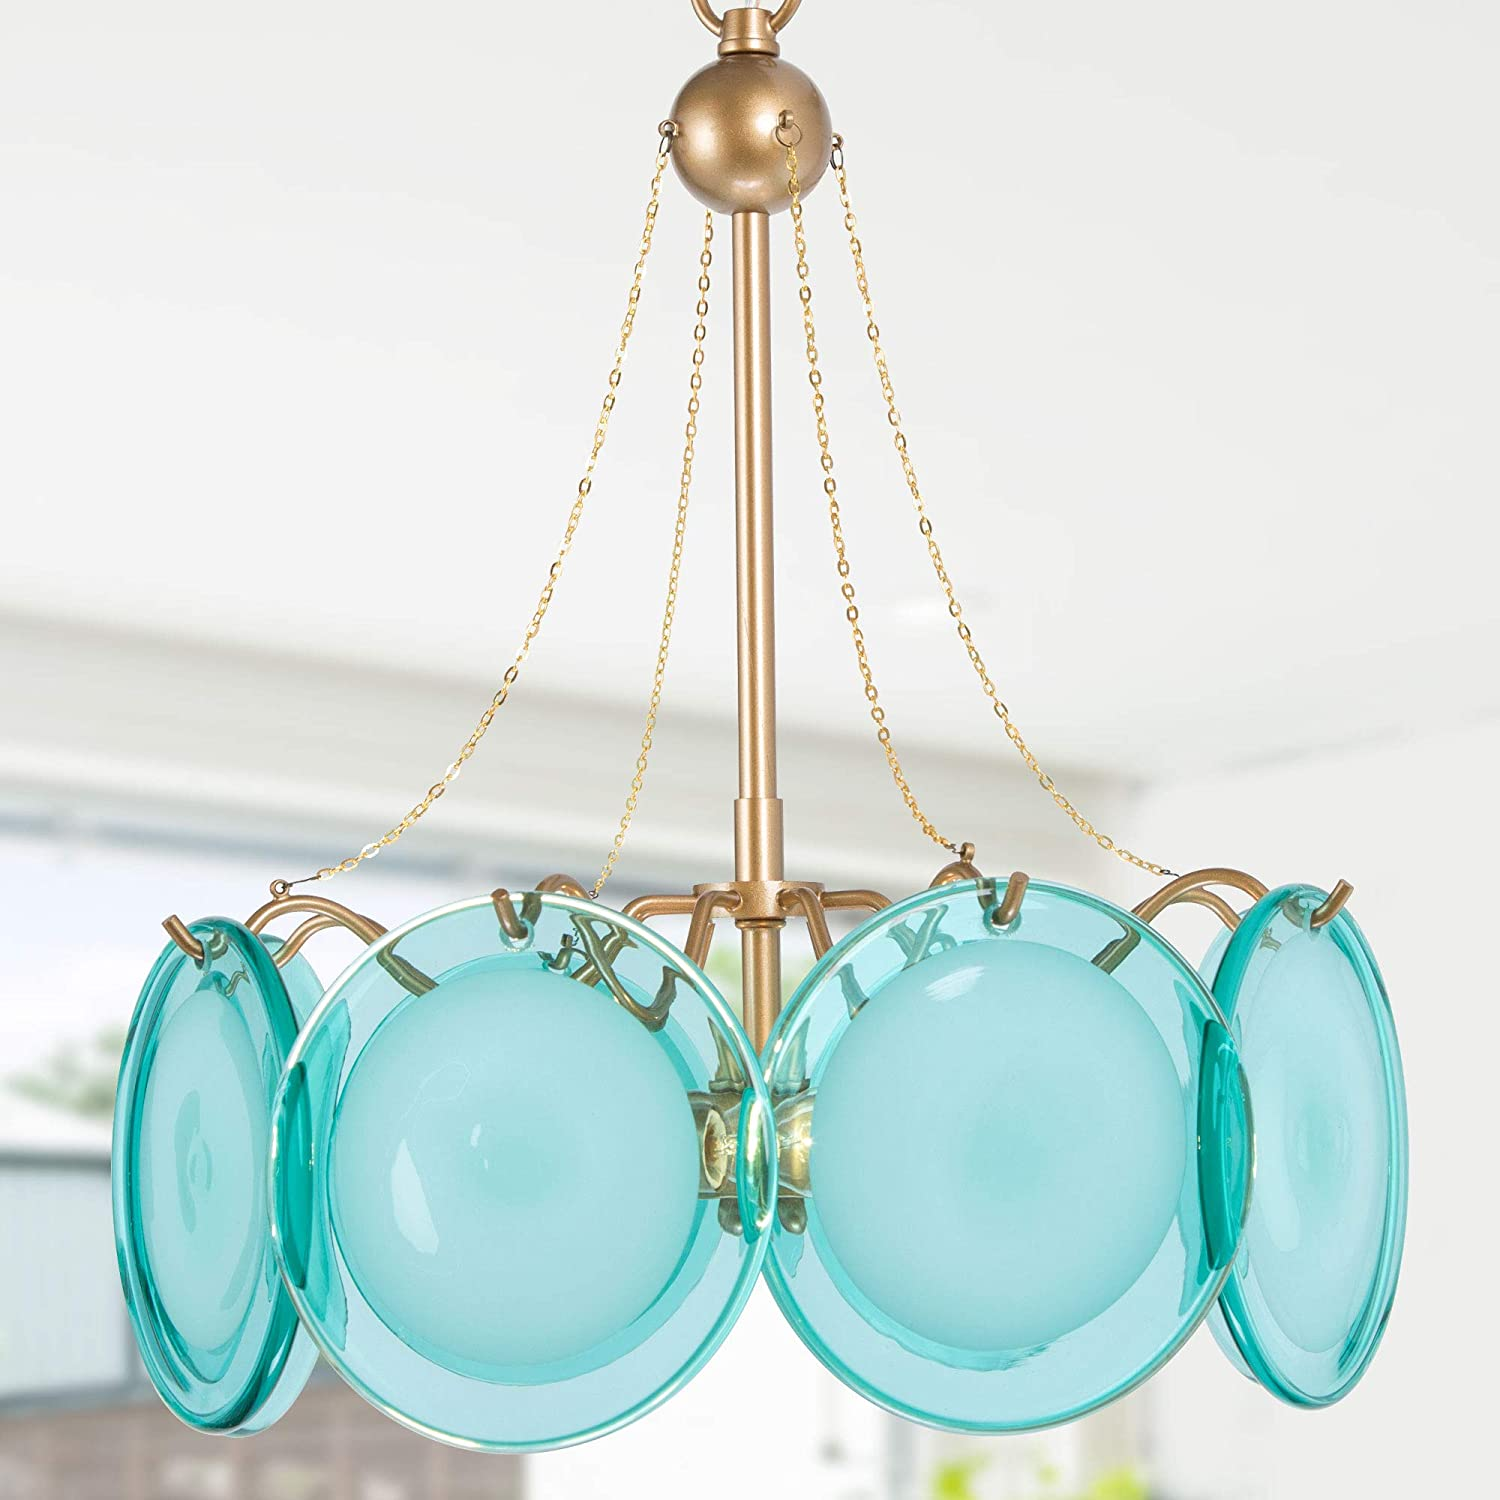 Chandeliers for Dining Rooms, Gold Drum Chandelier, Modern Pendant Light Fixtures with High-end Blue Glass Shade and Gold Finish for Kitchen Island, Foyer & Bedroom